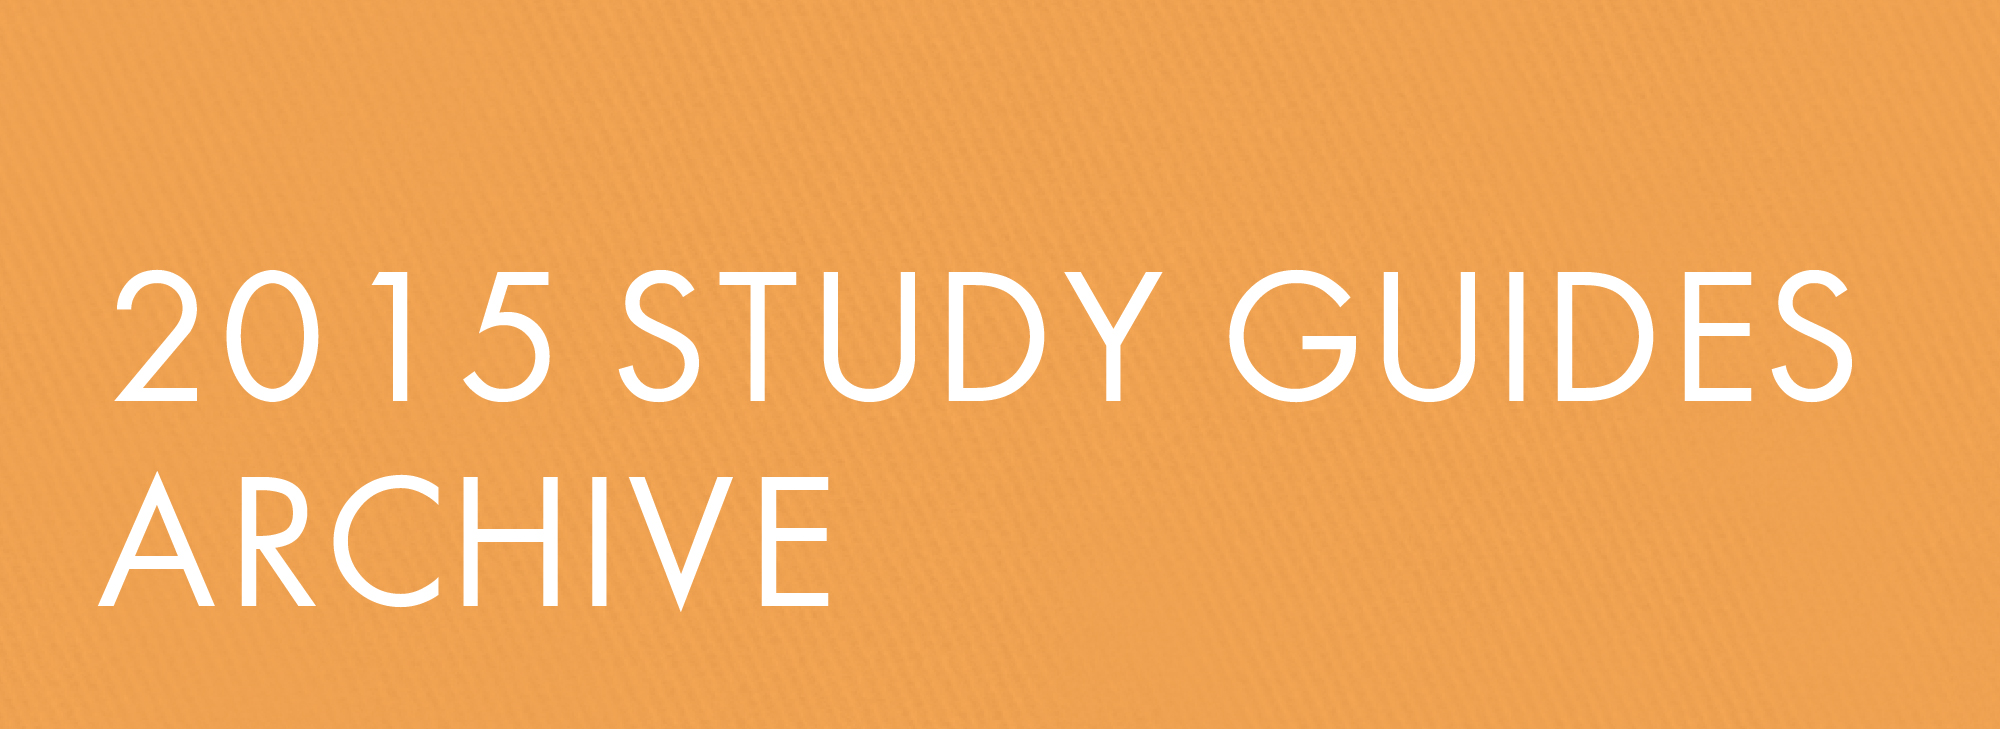 2015 Study Guides Archive